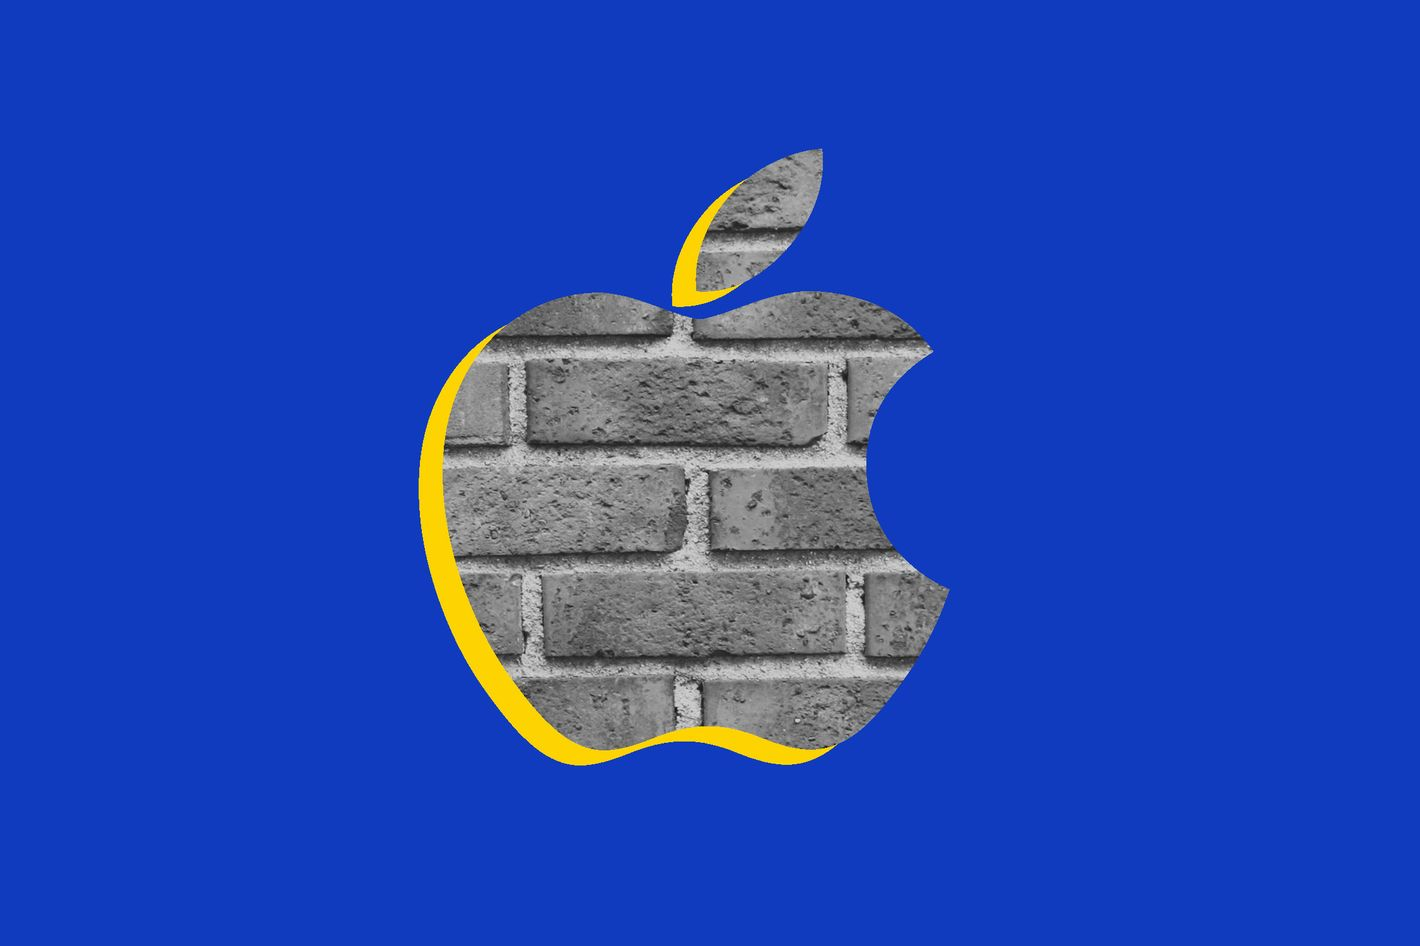 Use iTunes to Install iOS 10 and Fix Bricked iPhone